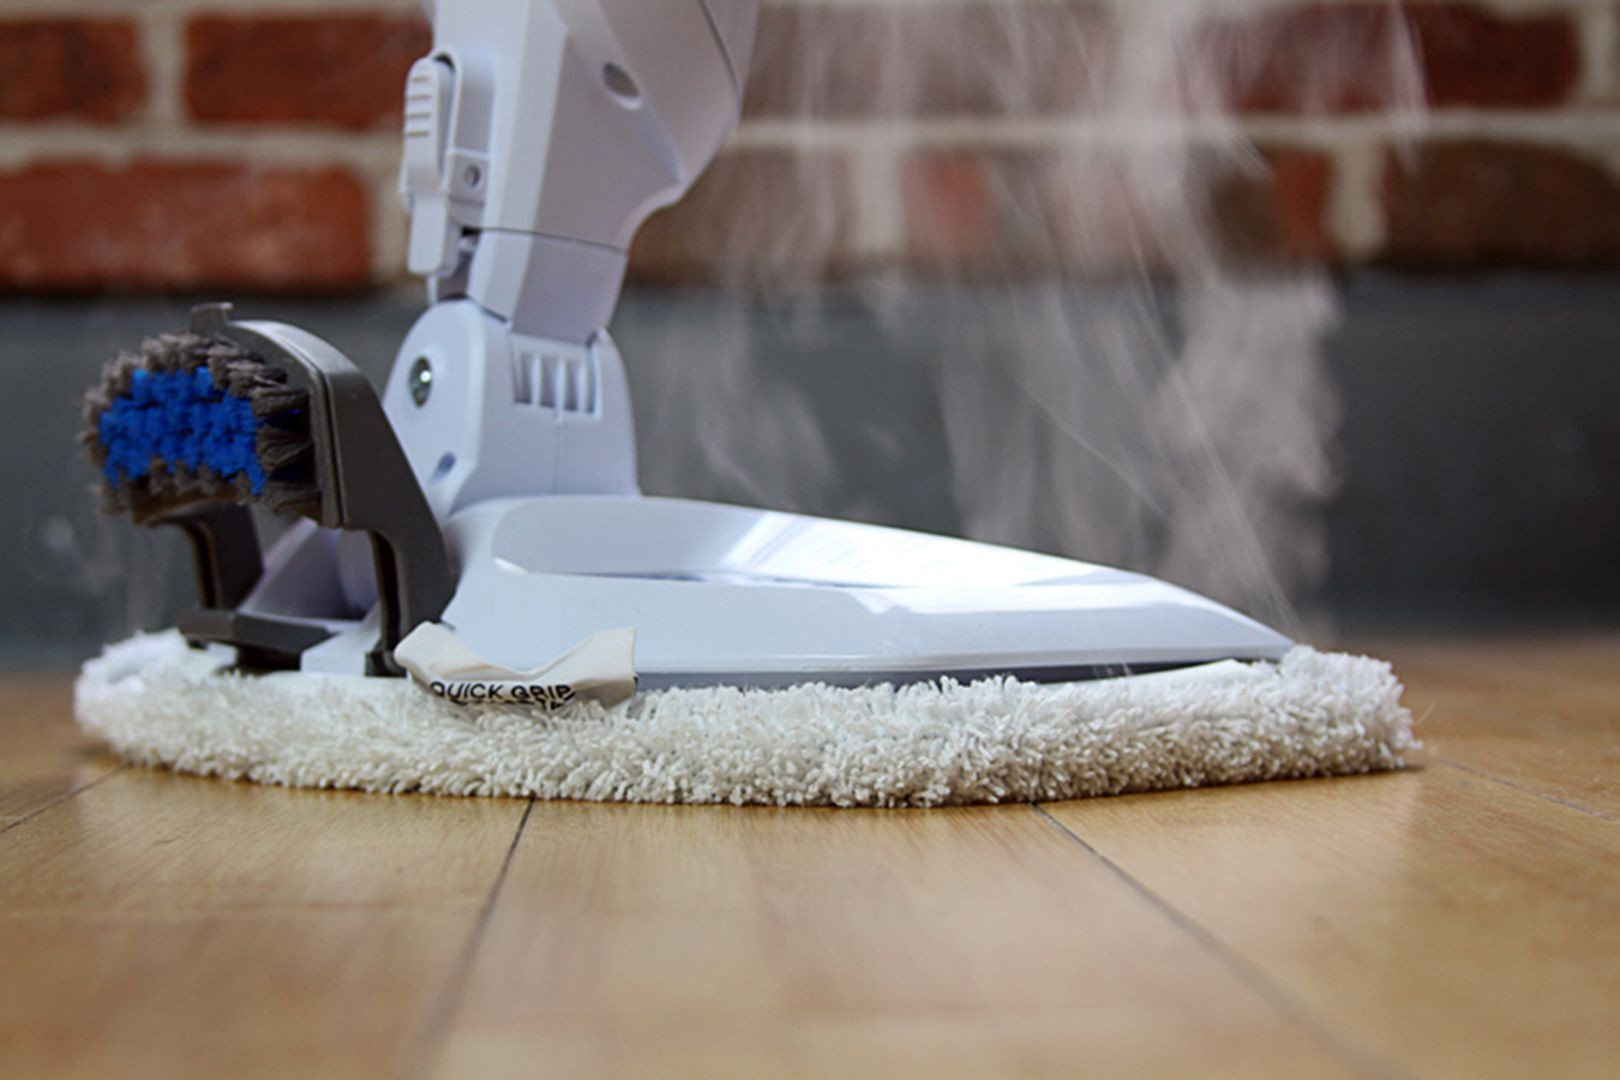 the shark hardwood floor cleaner of use a steam mop efficiently if you want clean floors regarding steam mop 33683344996 29f26c2761 o 58f116ab3df78cd3fc1c2c16